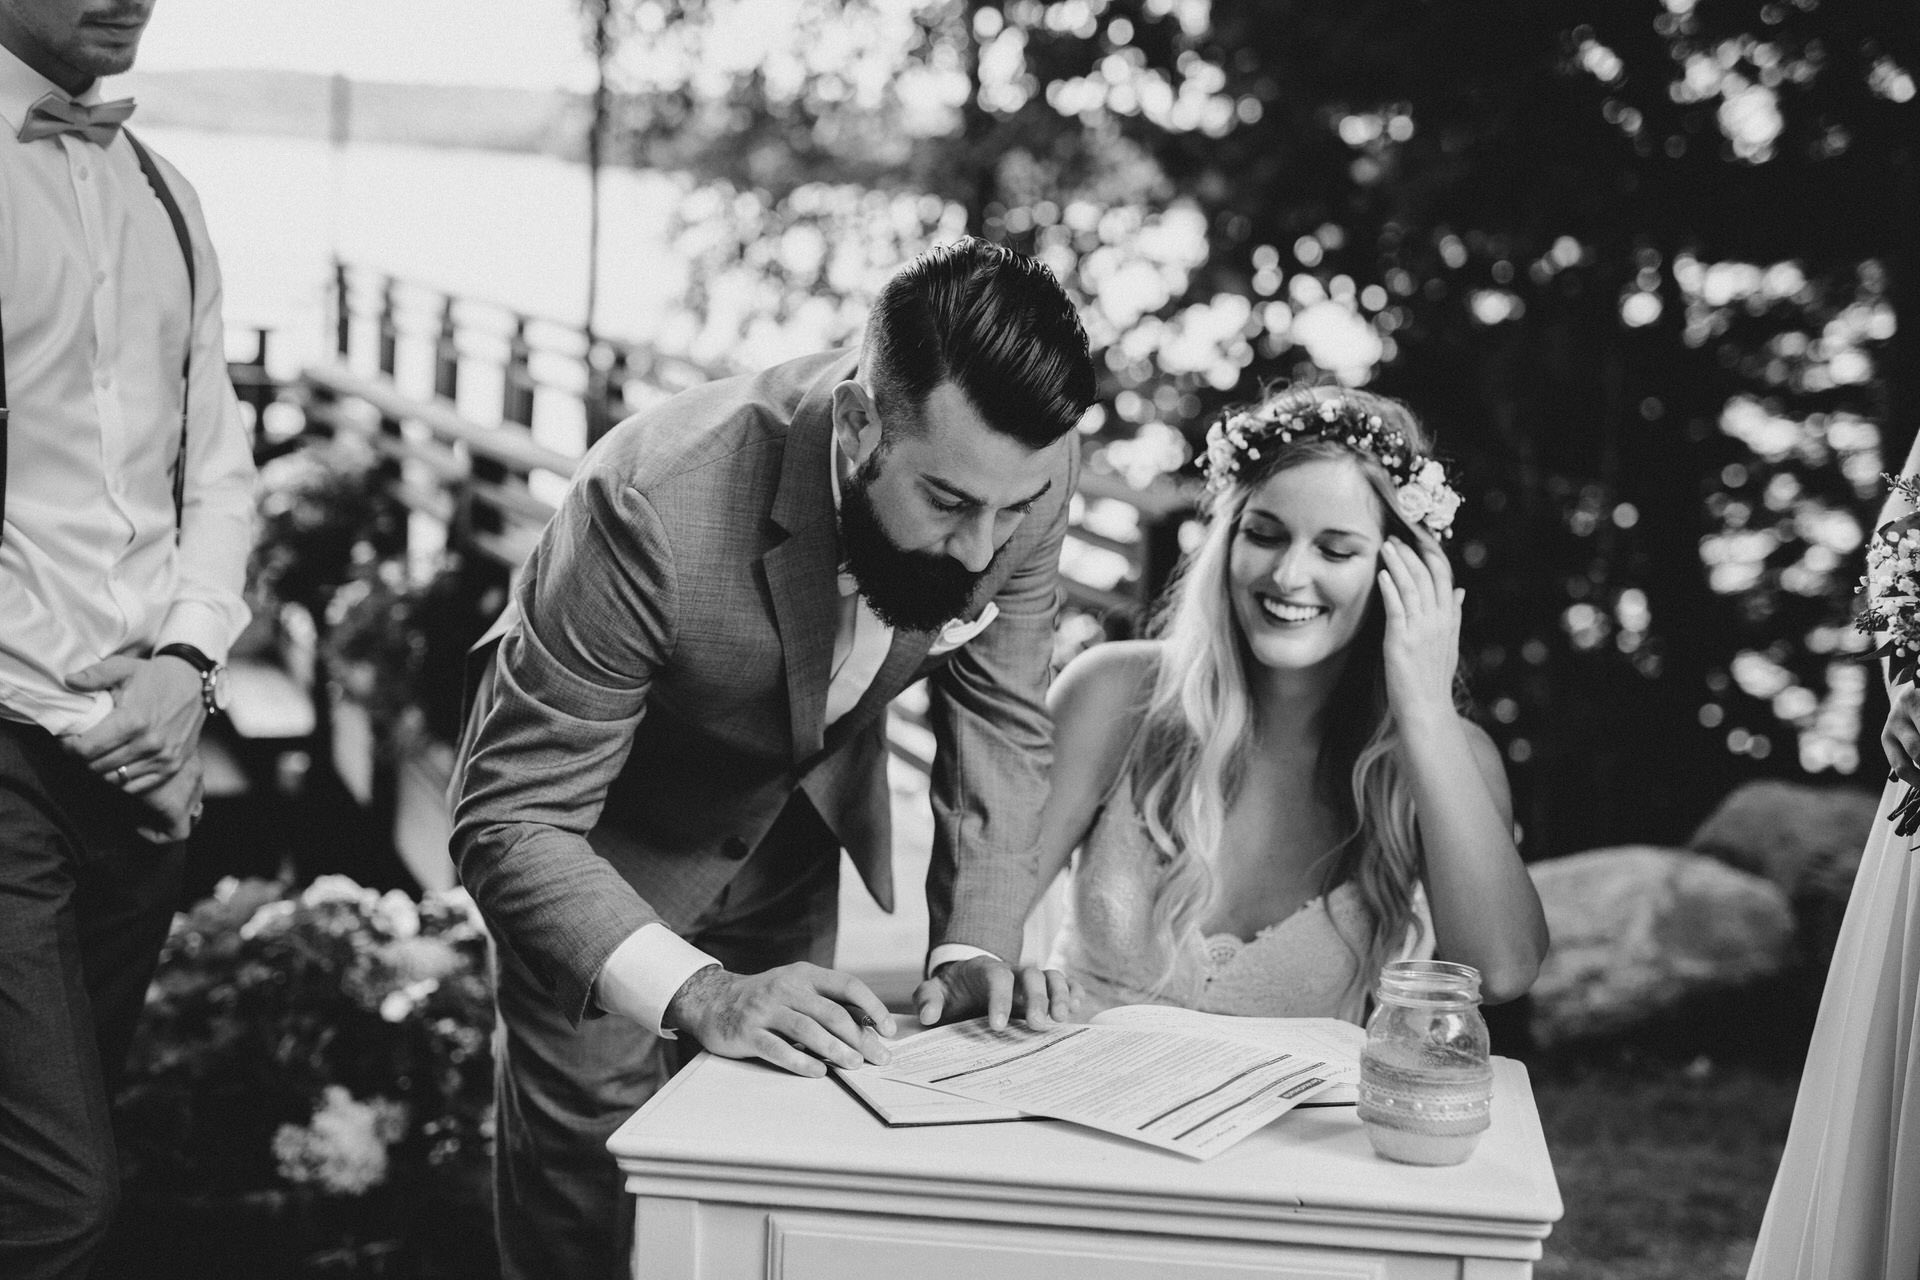 Muskoka Wedding - signing papers